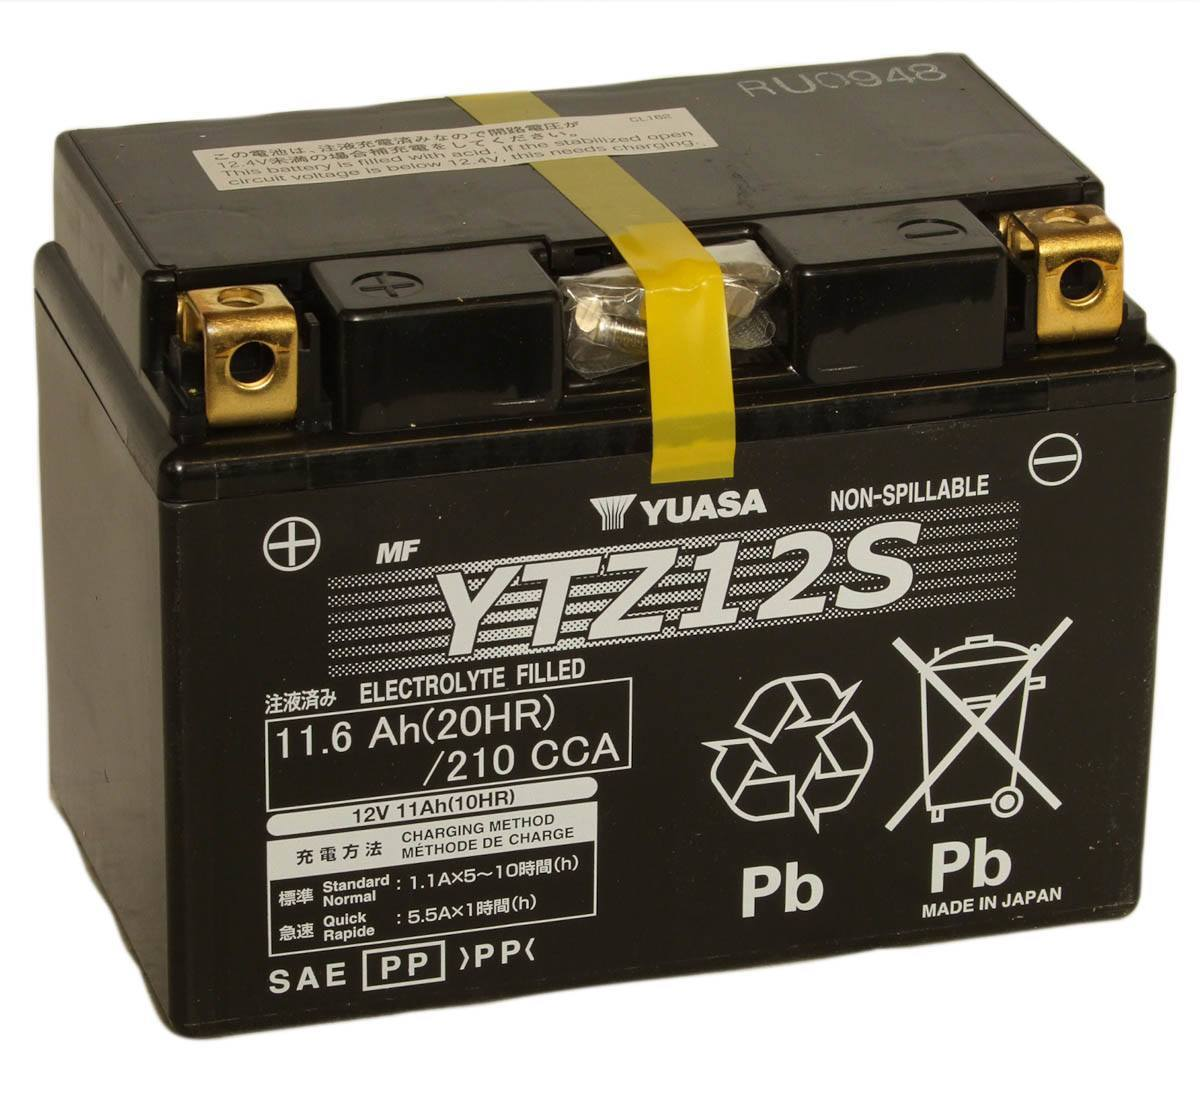 Ytz12s Bs Motorbike Gel Batteries For The Honda Xl650v Transalp Etc